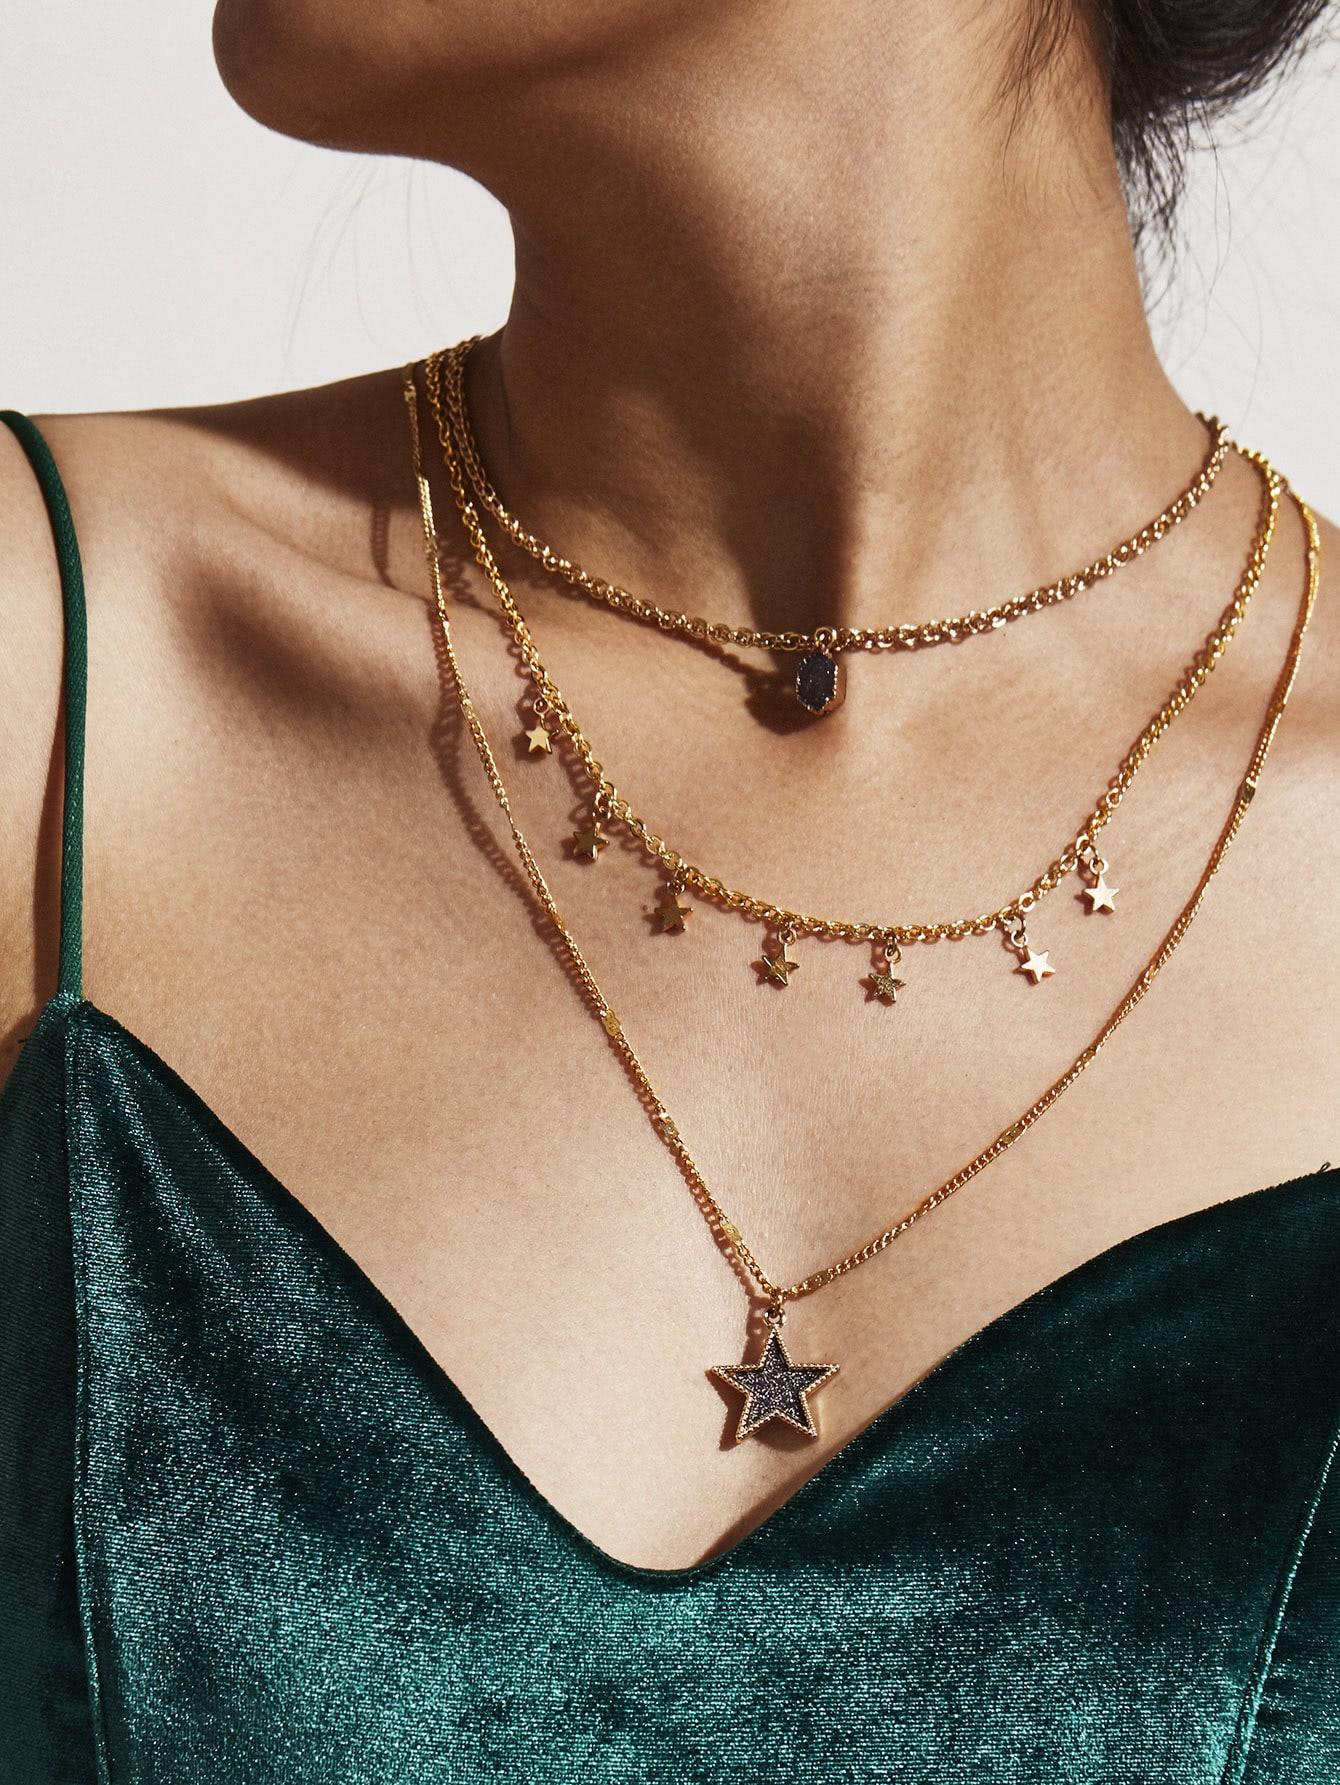 Star Pendant Layered Necklace concise and cute bronze star pendant necklace